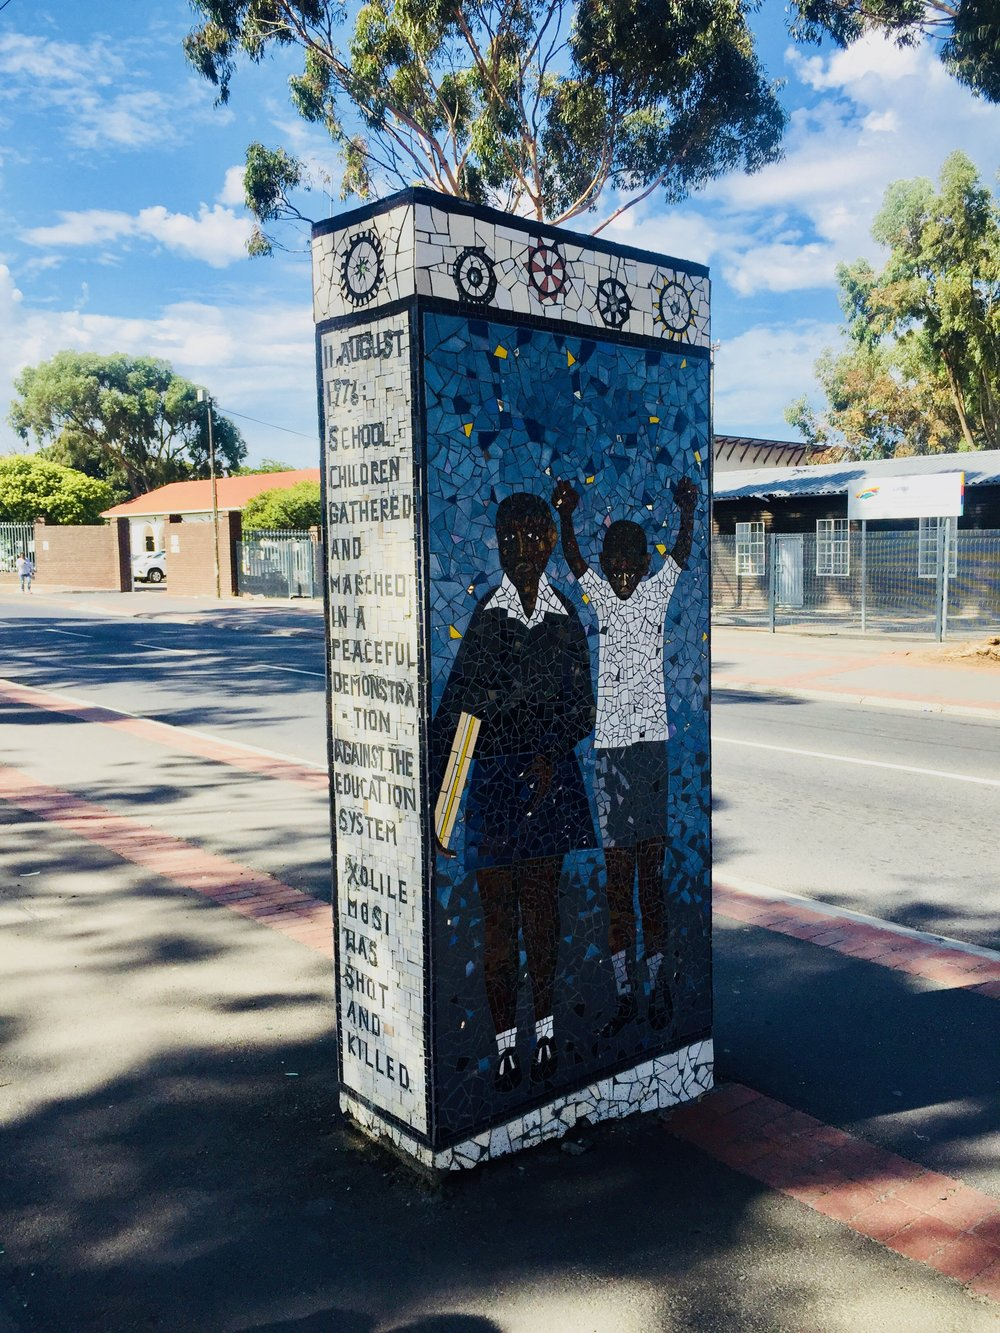 Mosaic memoria to student uprisings in Langa as part of a project to remember the neighbourhoods history